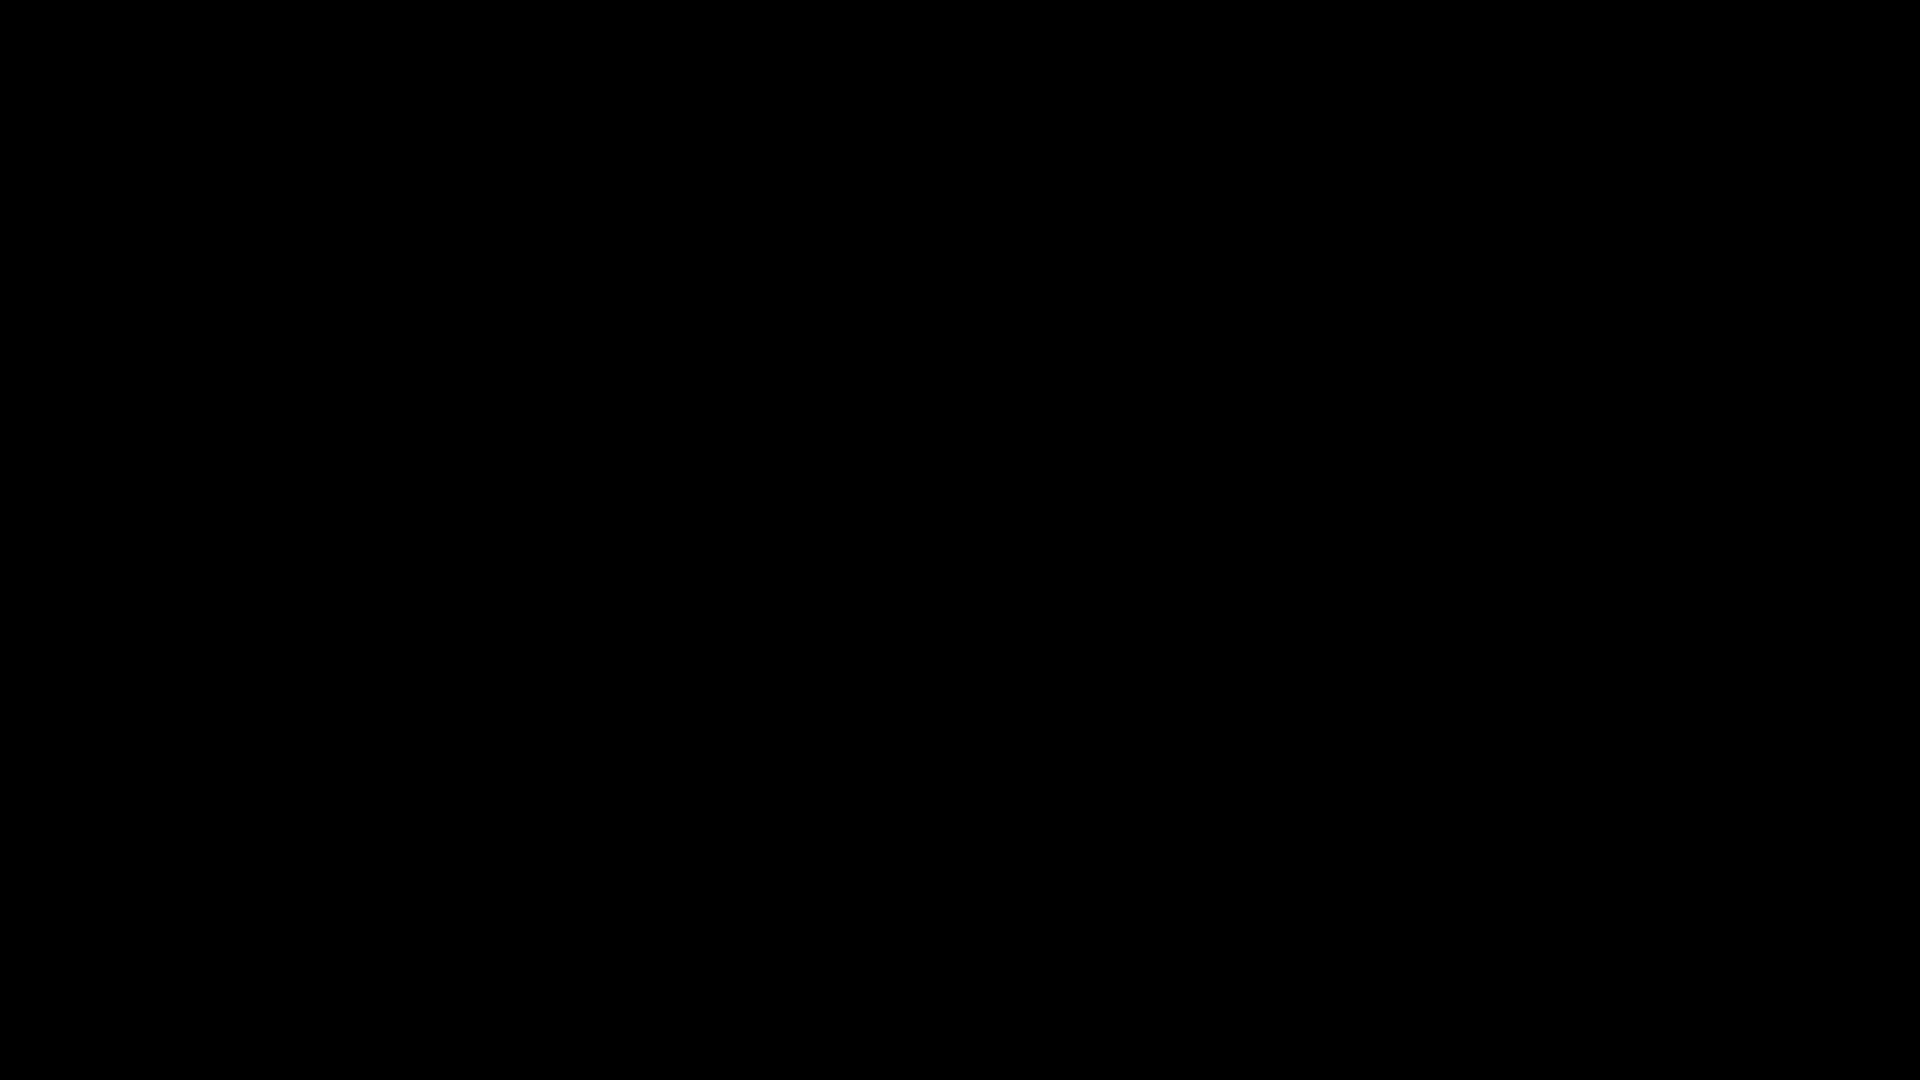 88 OUTATIME 2016 election 88 Back to the Future coded